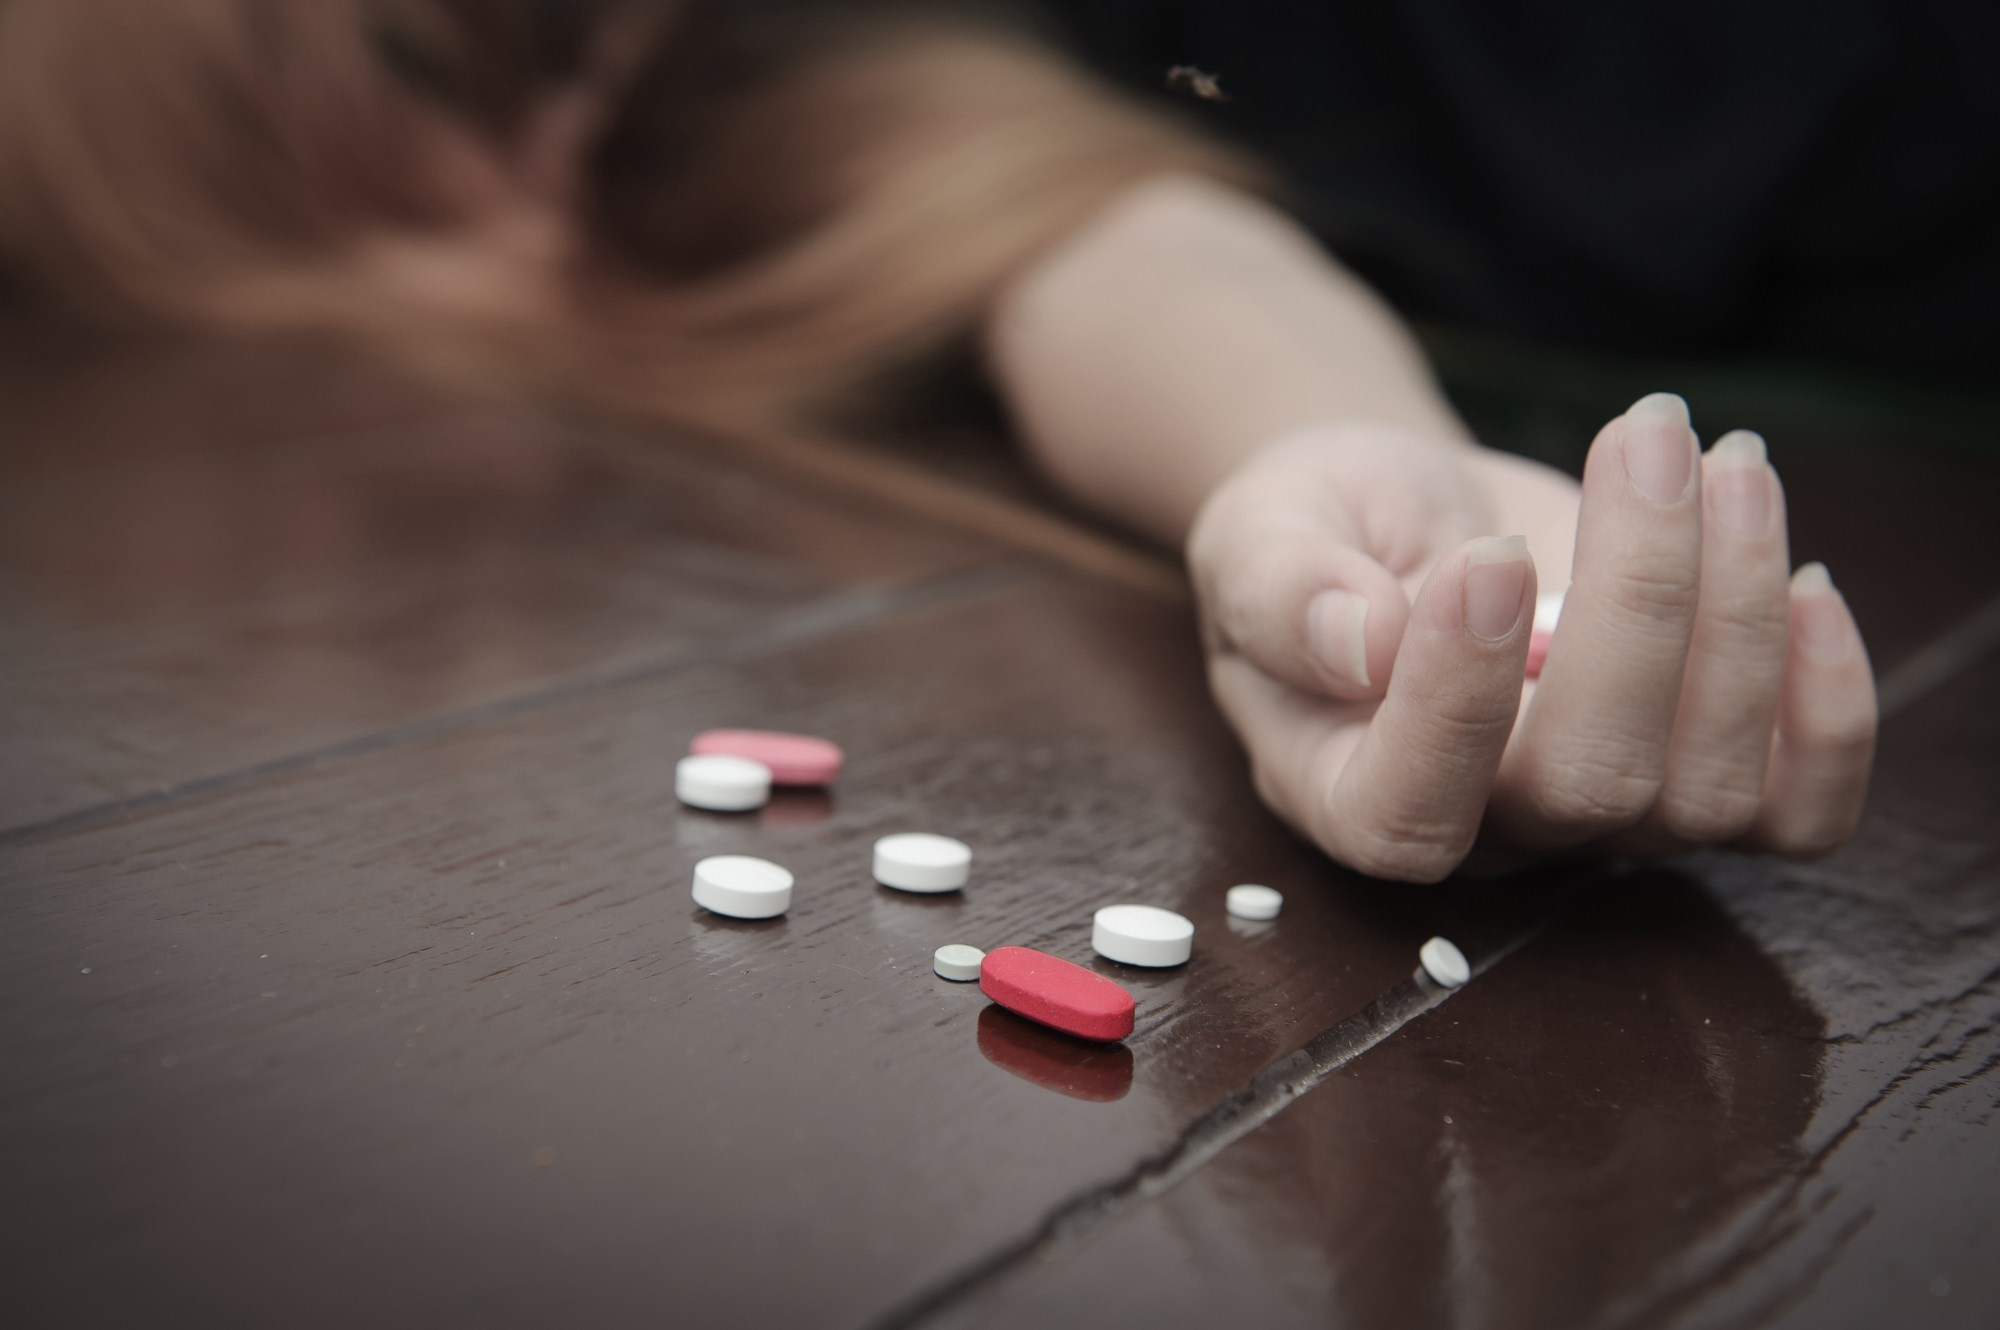 Researchers specifically looked at cases where individuals filled psychotropic drug prescriptions within 90 days of a suicide attempt.